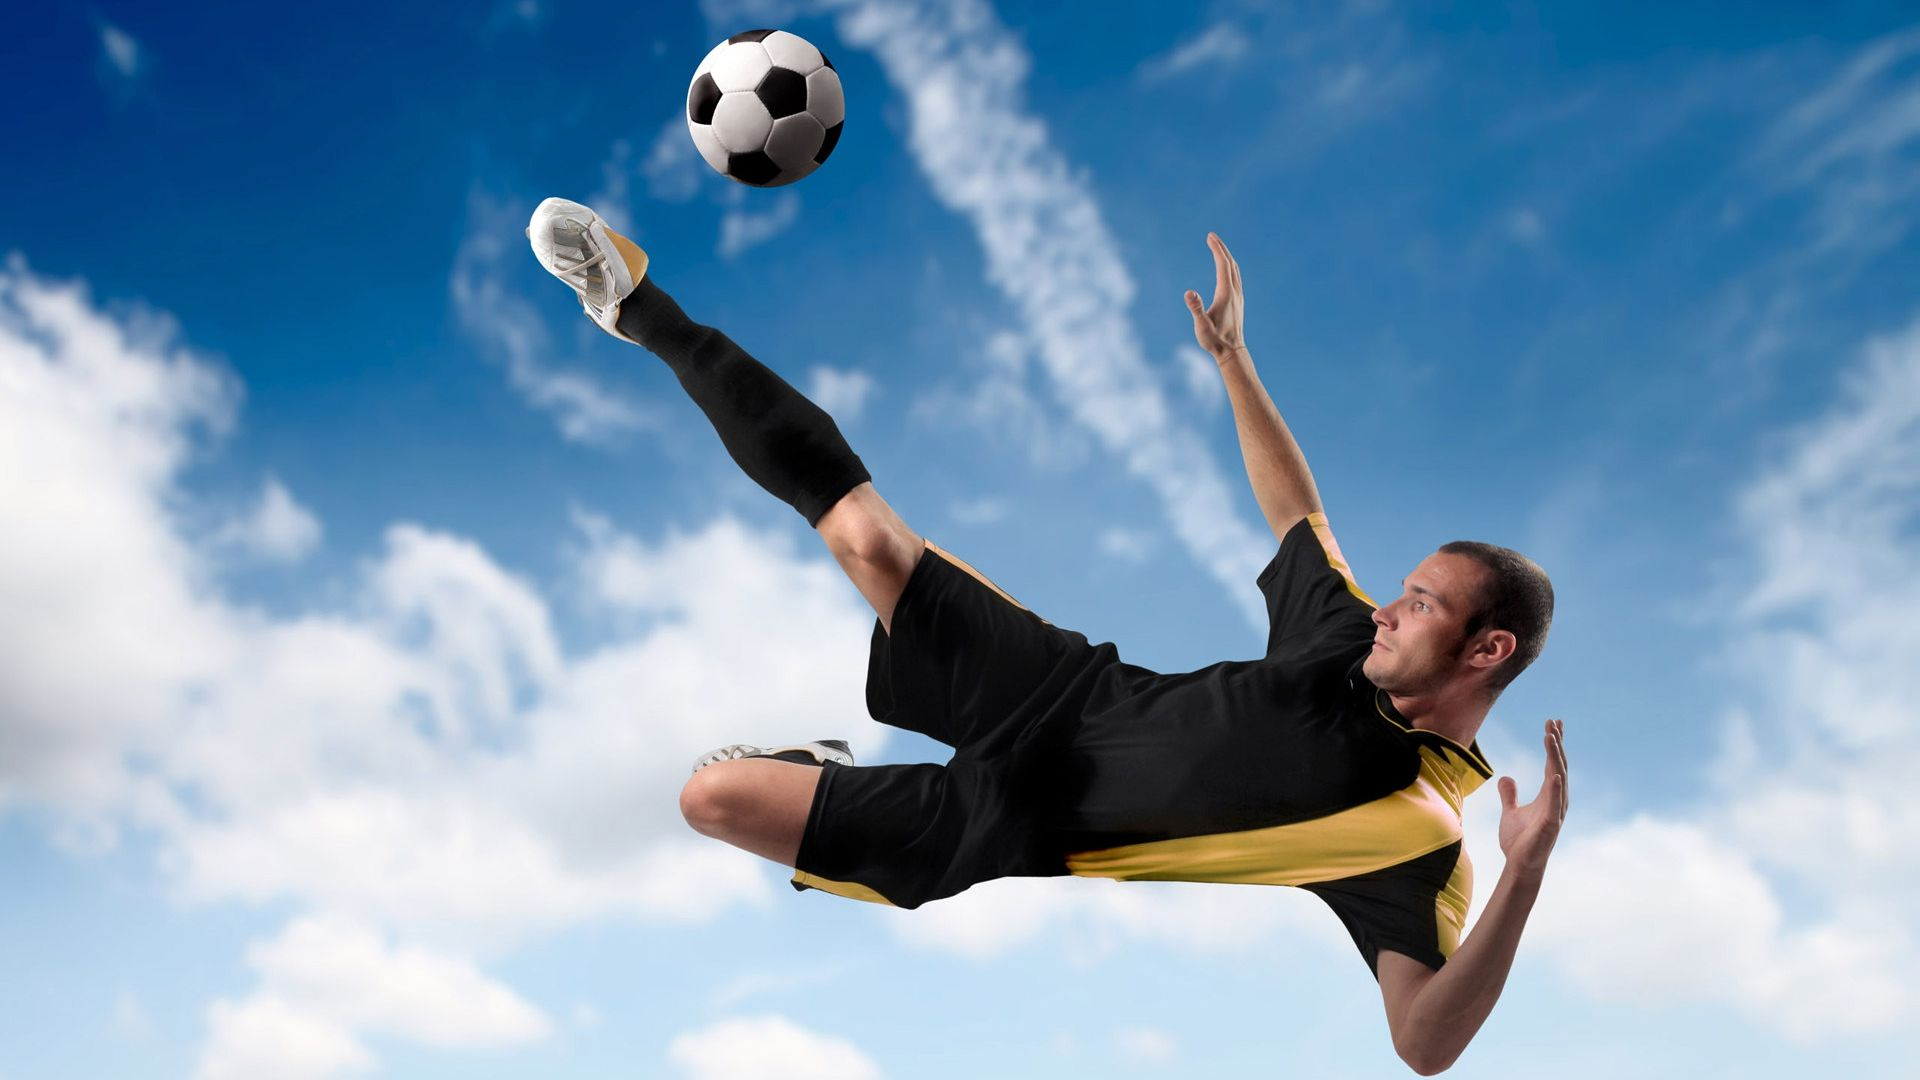 Pictures Sports Soccer